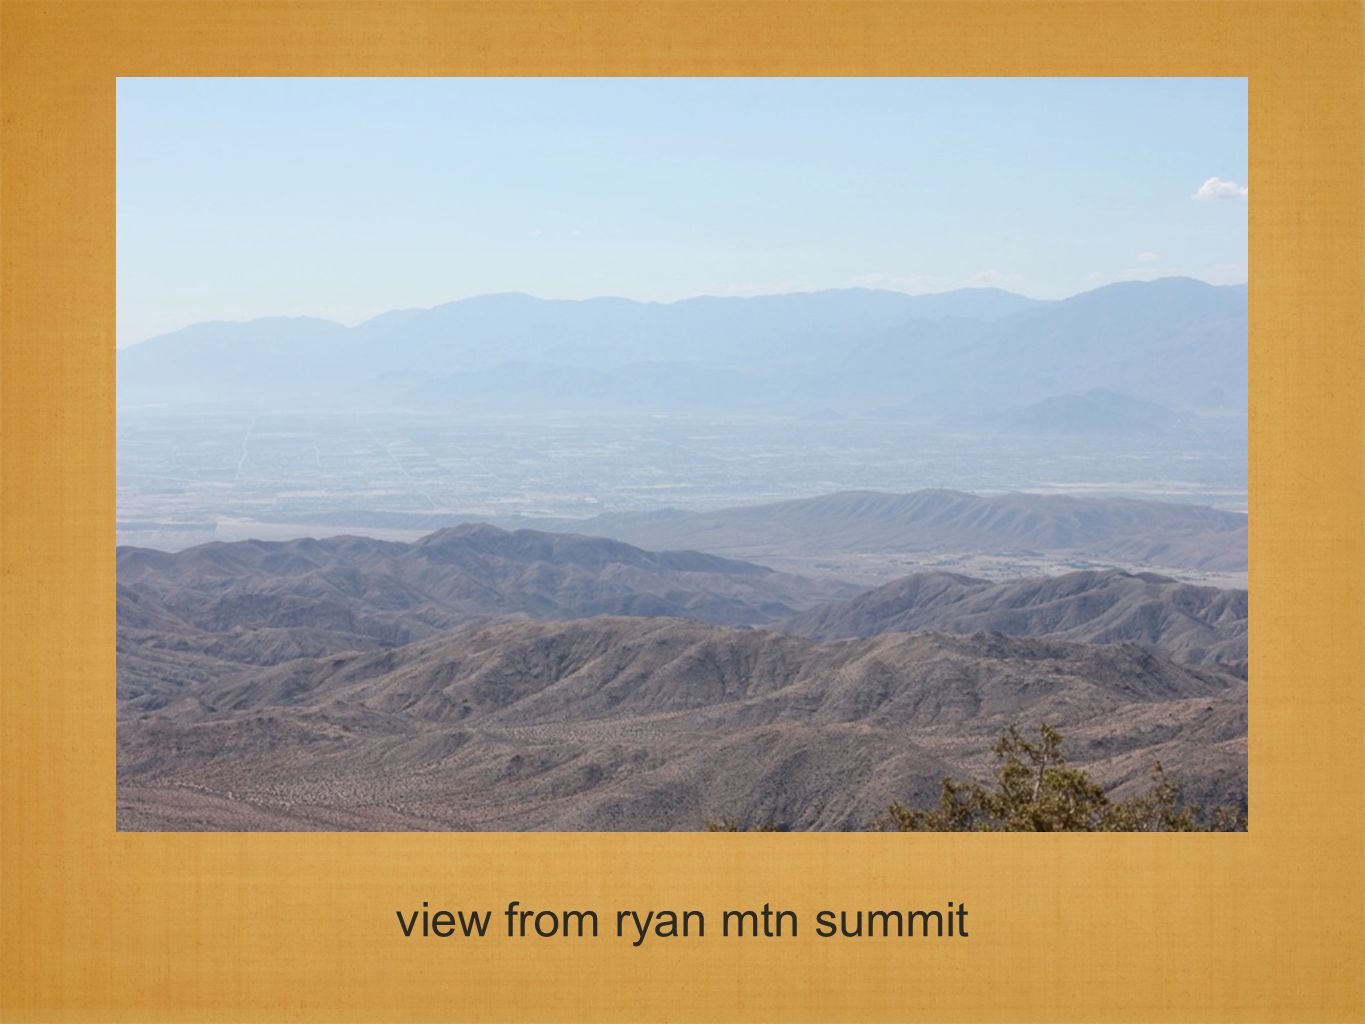 view from ryan mtn summit